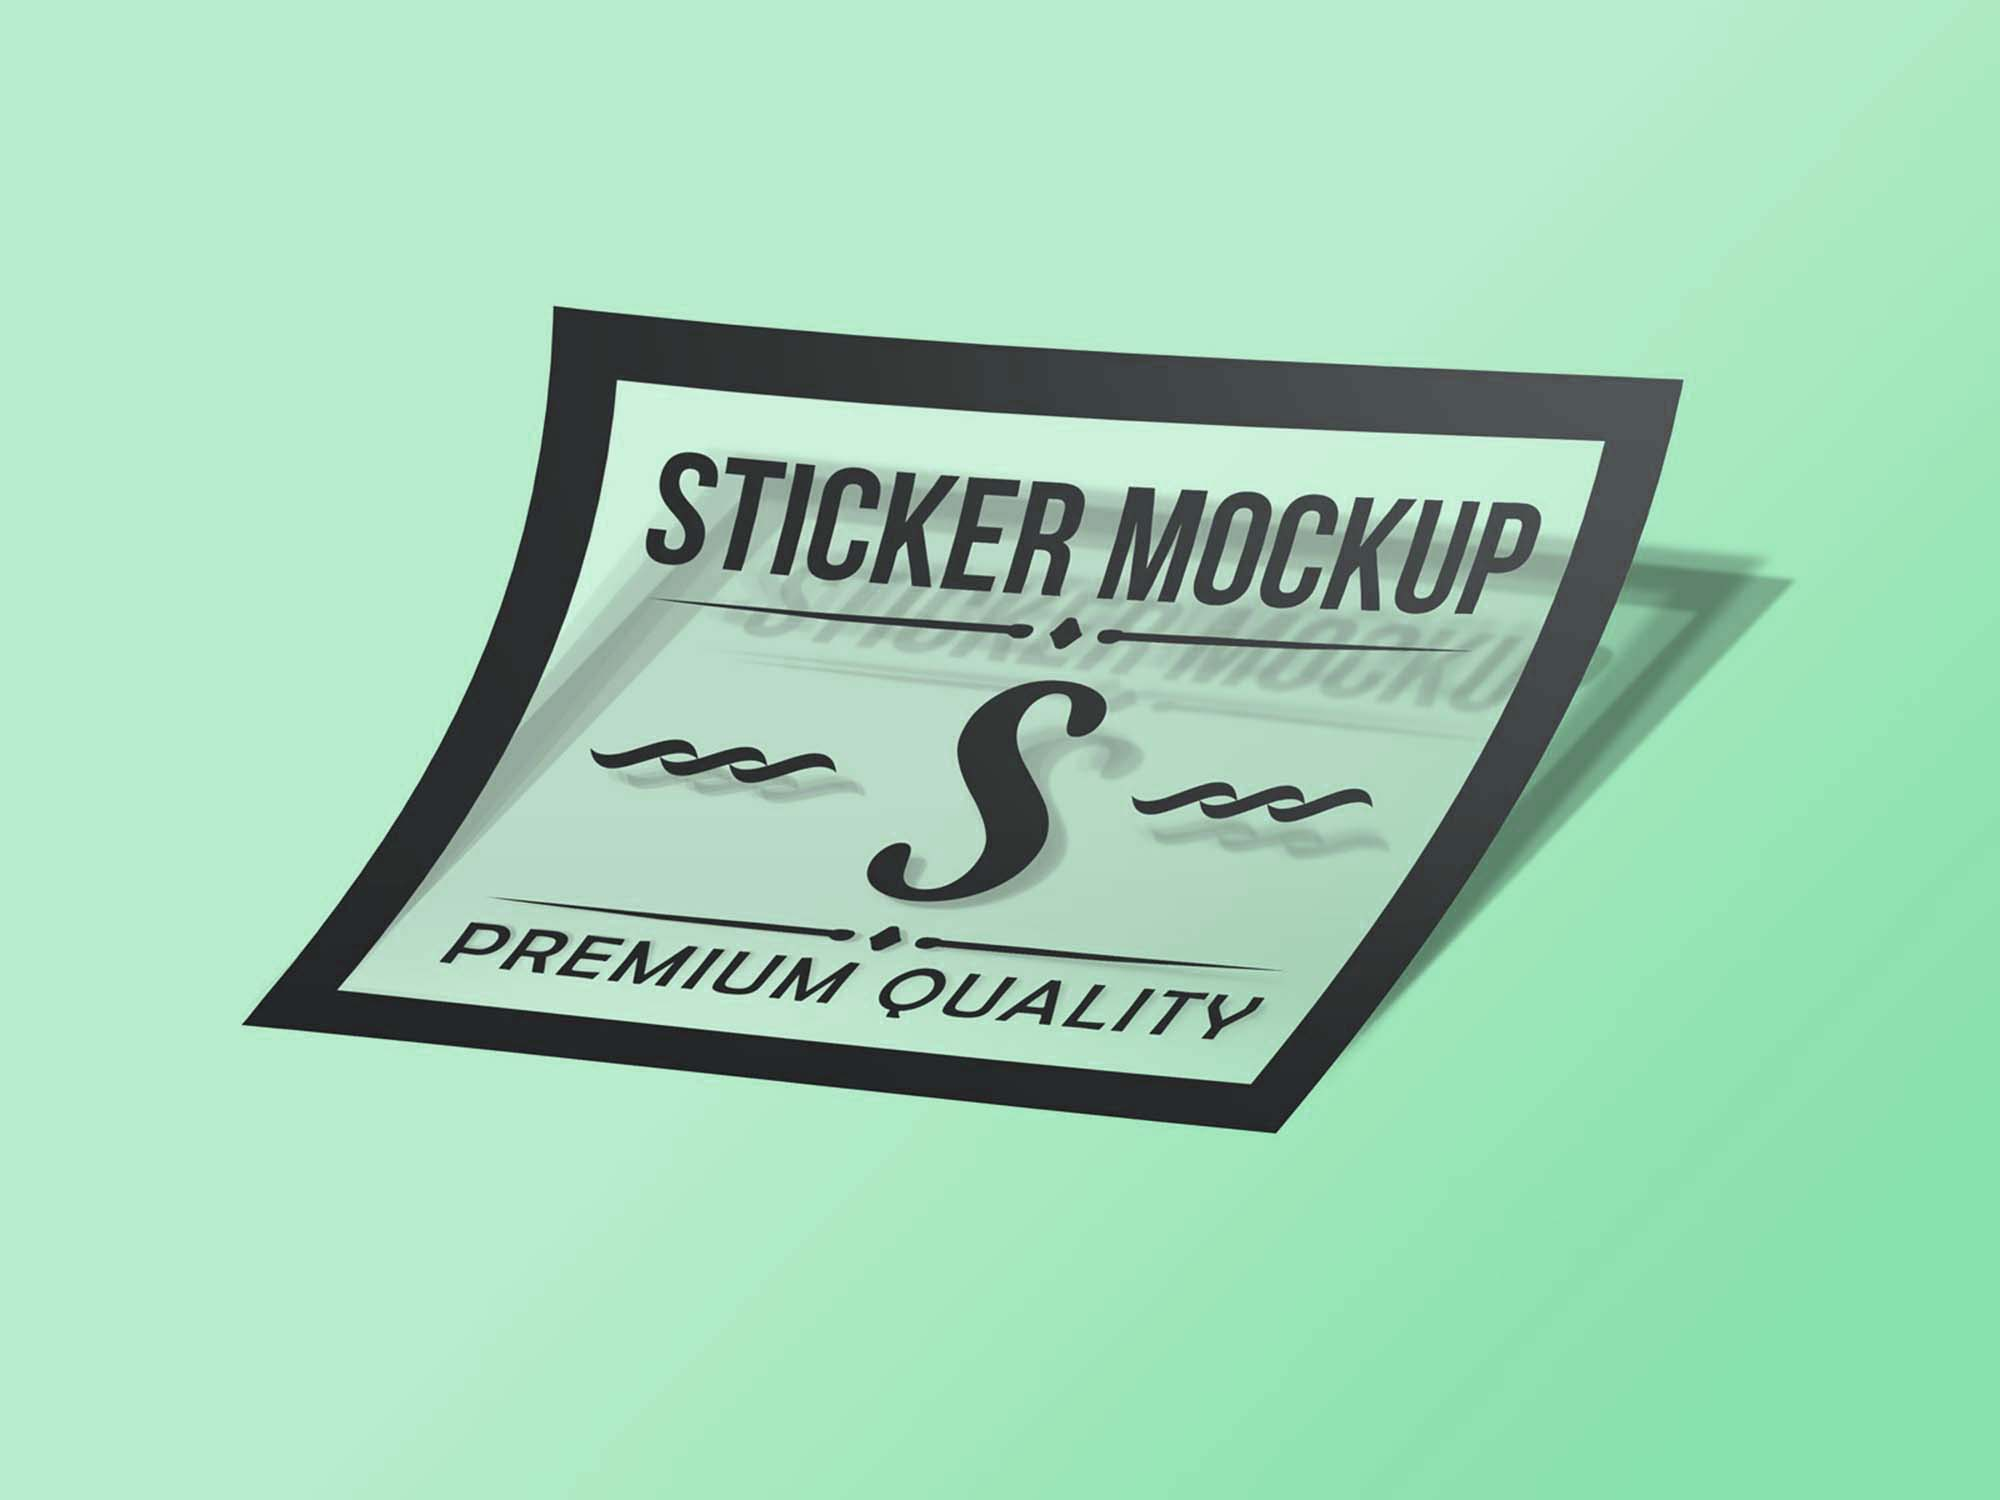 Thanks to design bolts for sharing this time saving photorealistic transparent sticker mockup